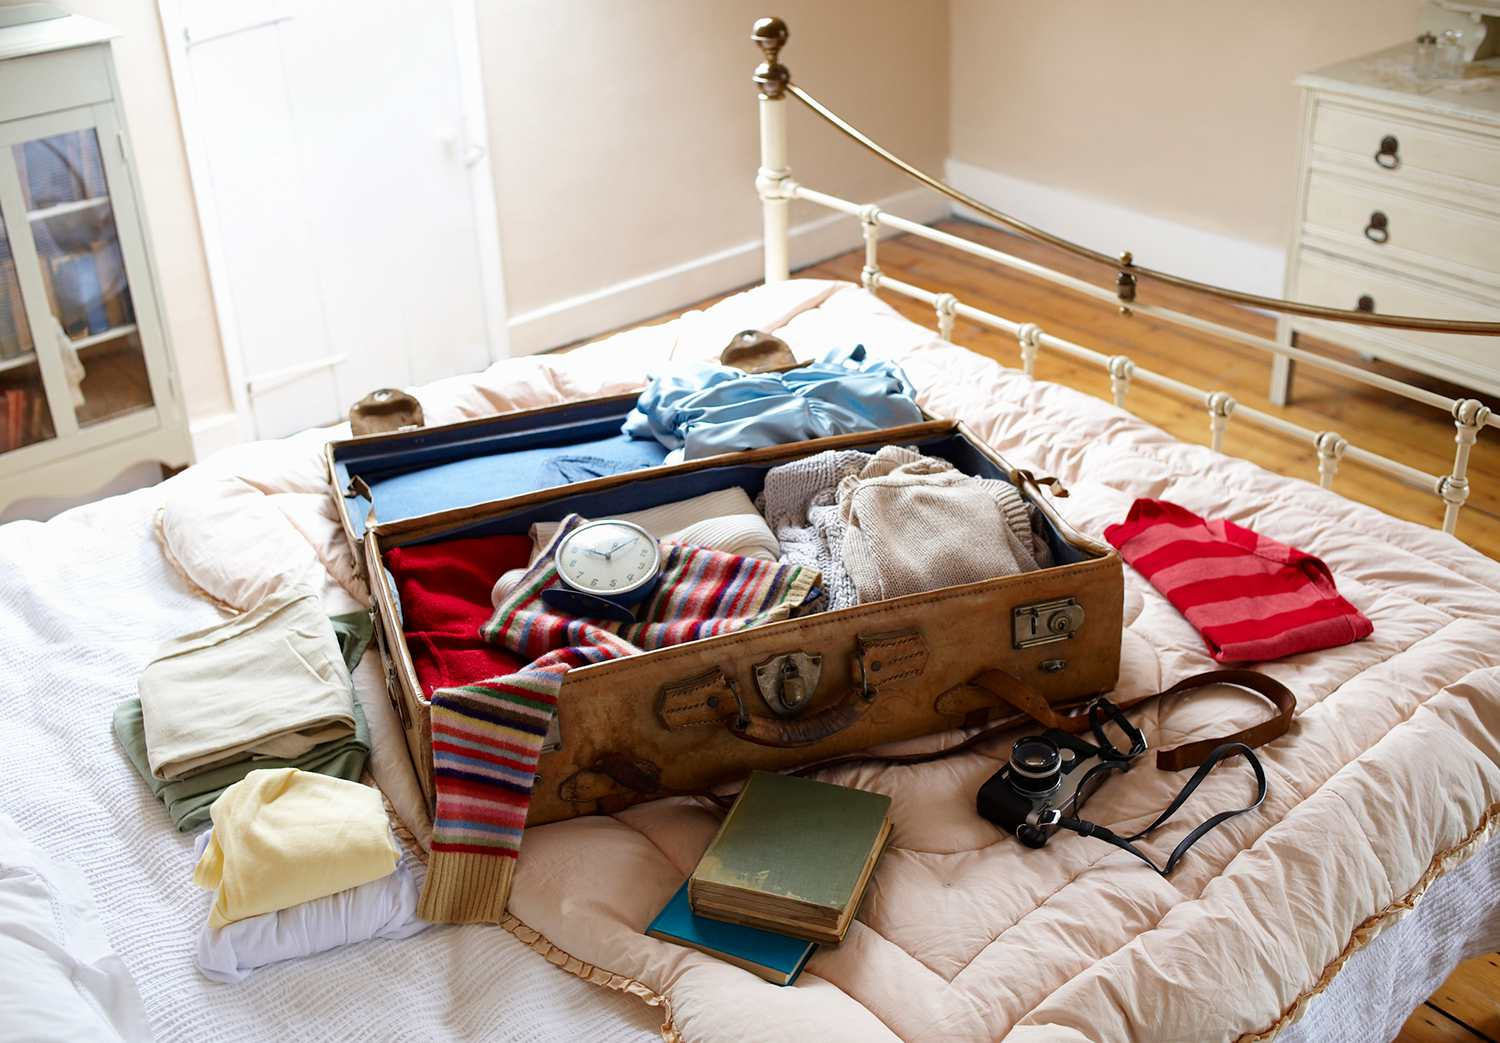 A chest of clothes